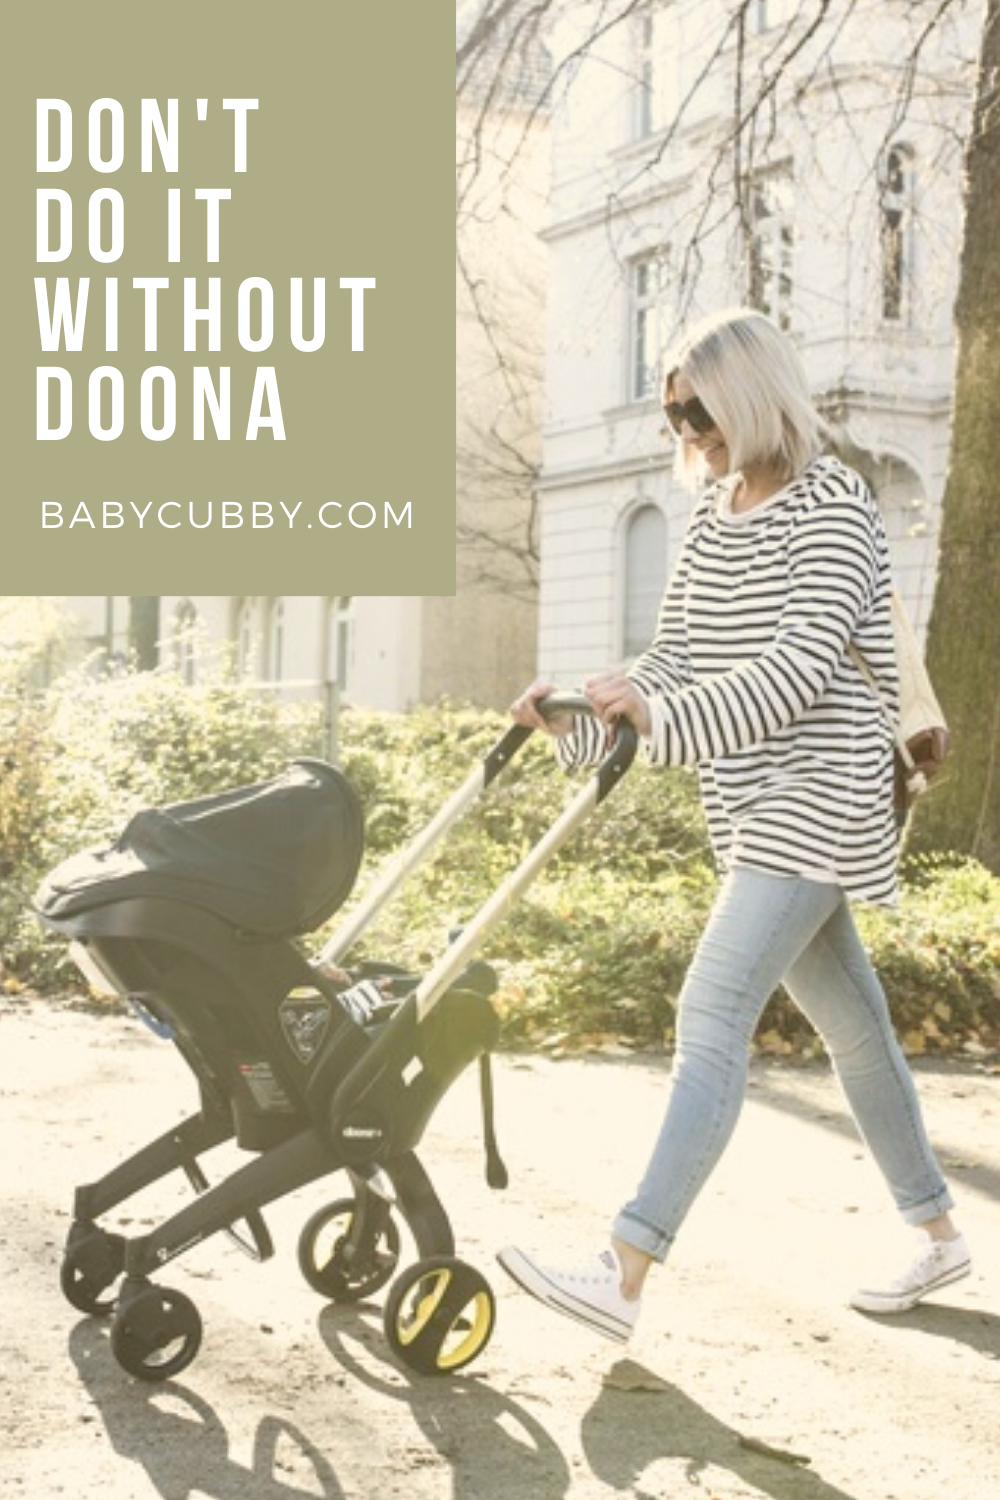 Don't Do It Without Doona The Baby Cubby Community Blog